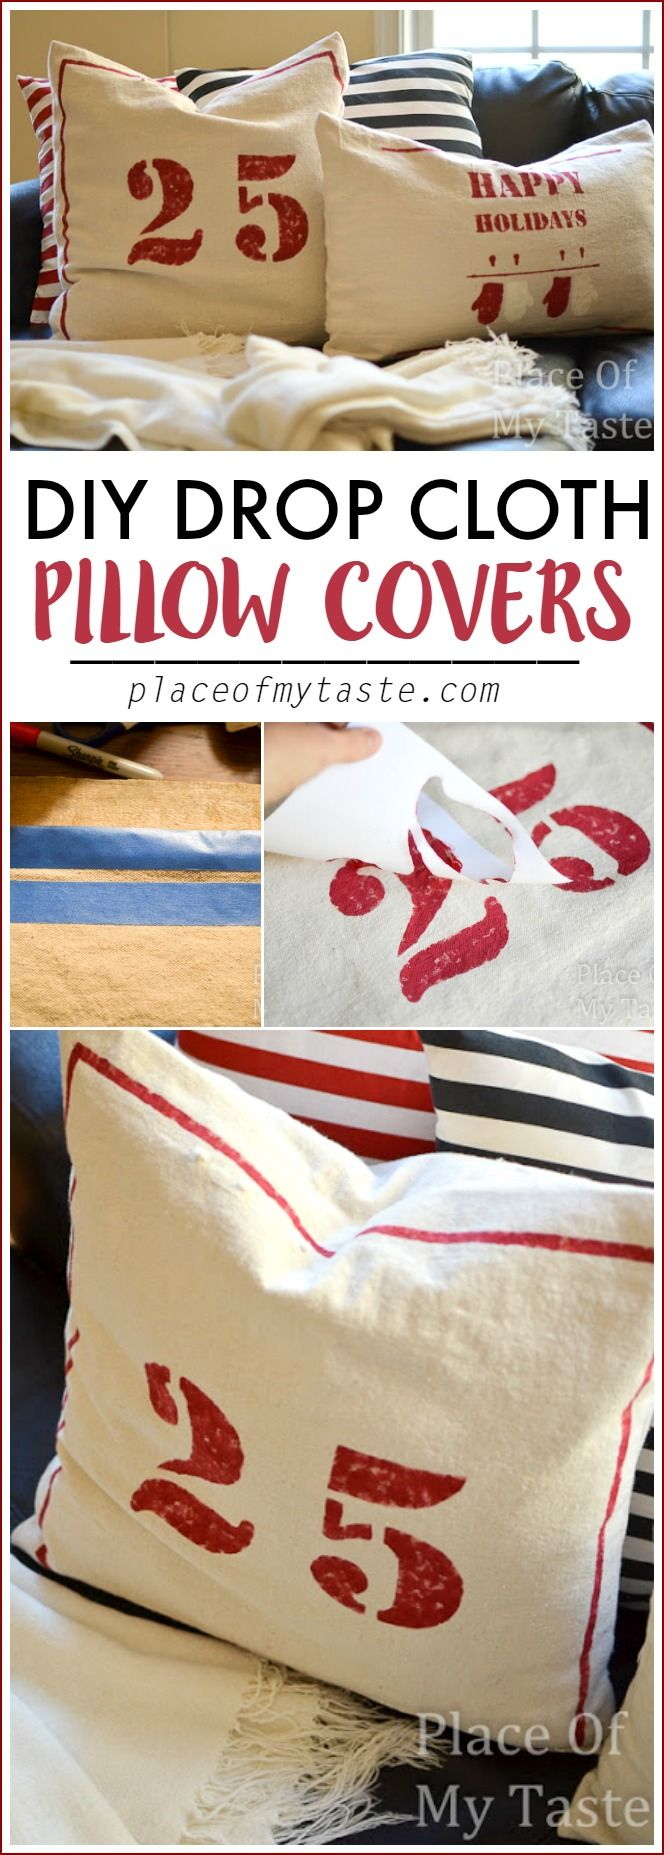 DIY Drop cloth pillow covers ! Ahmazing project for the Holidays!